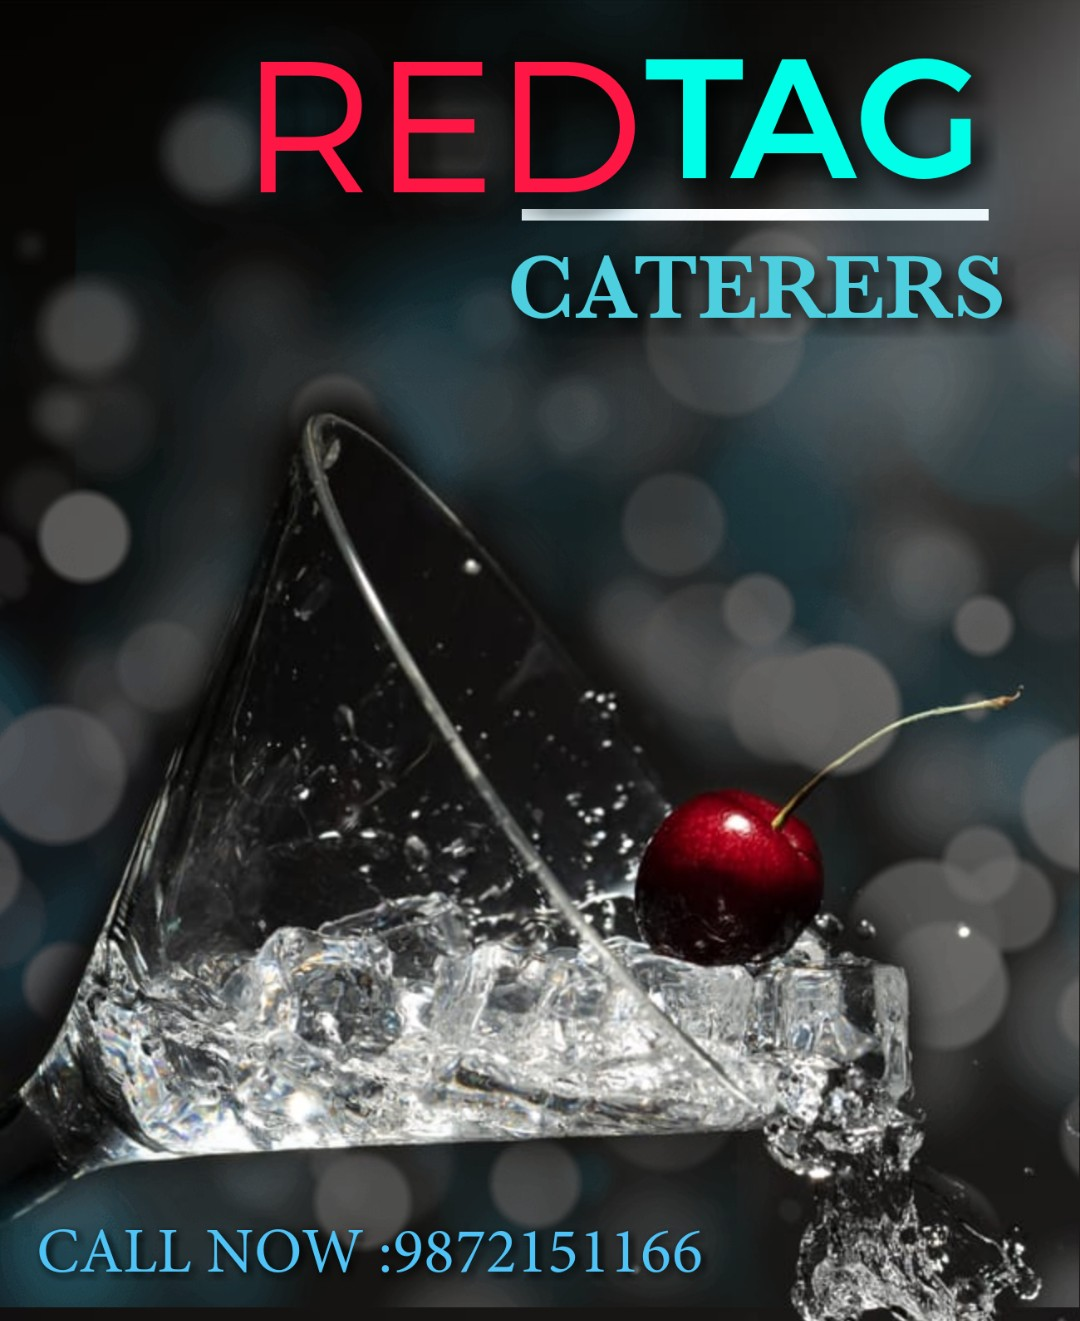 Red Tag Caterers, Best leading catering company in Ludhiana city of Punjab, best party caterer in Ludhiana, best wedding caterers in Ludhiana, best wedding planner in Ludhiana, best catering service in Ludhiana,